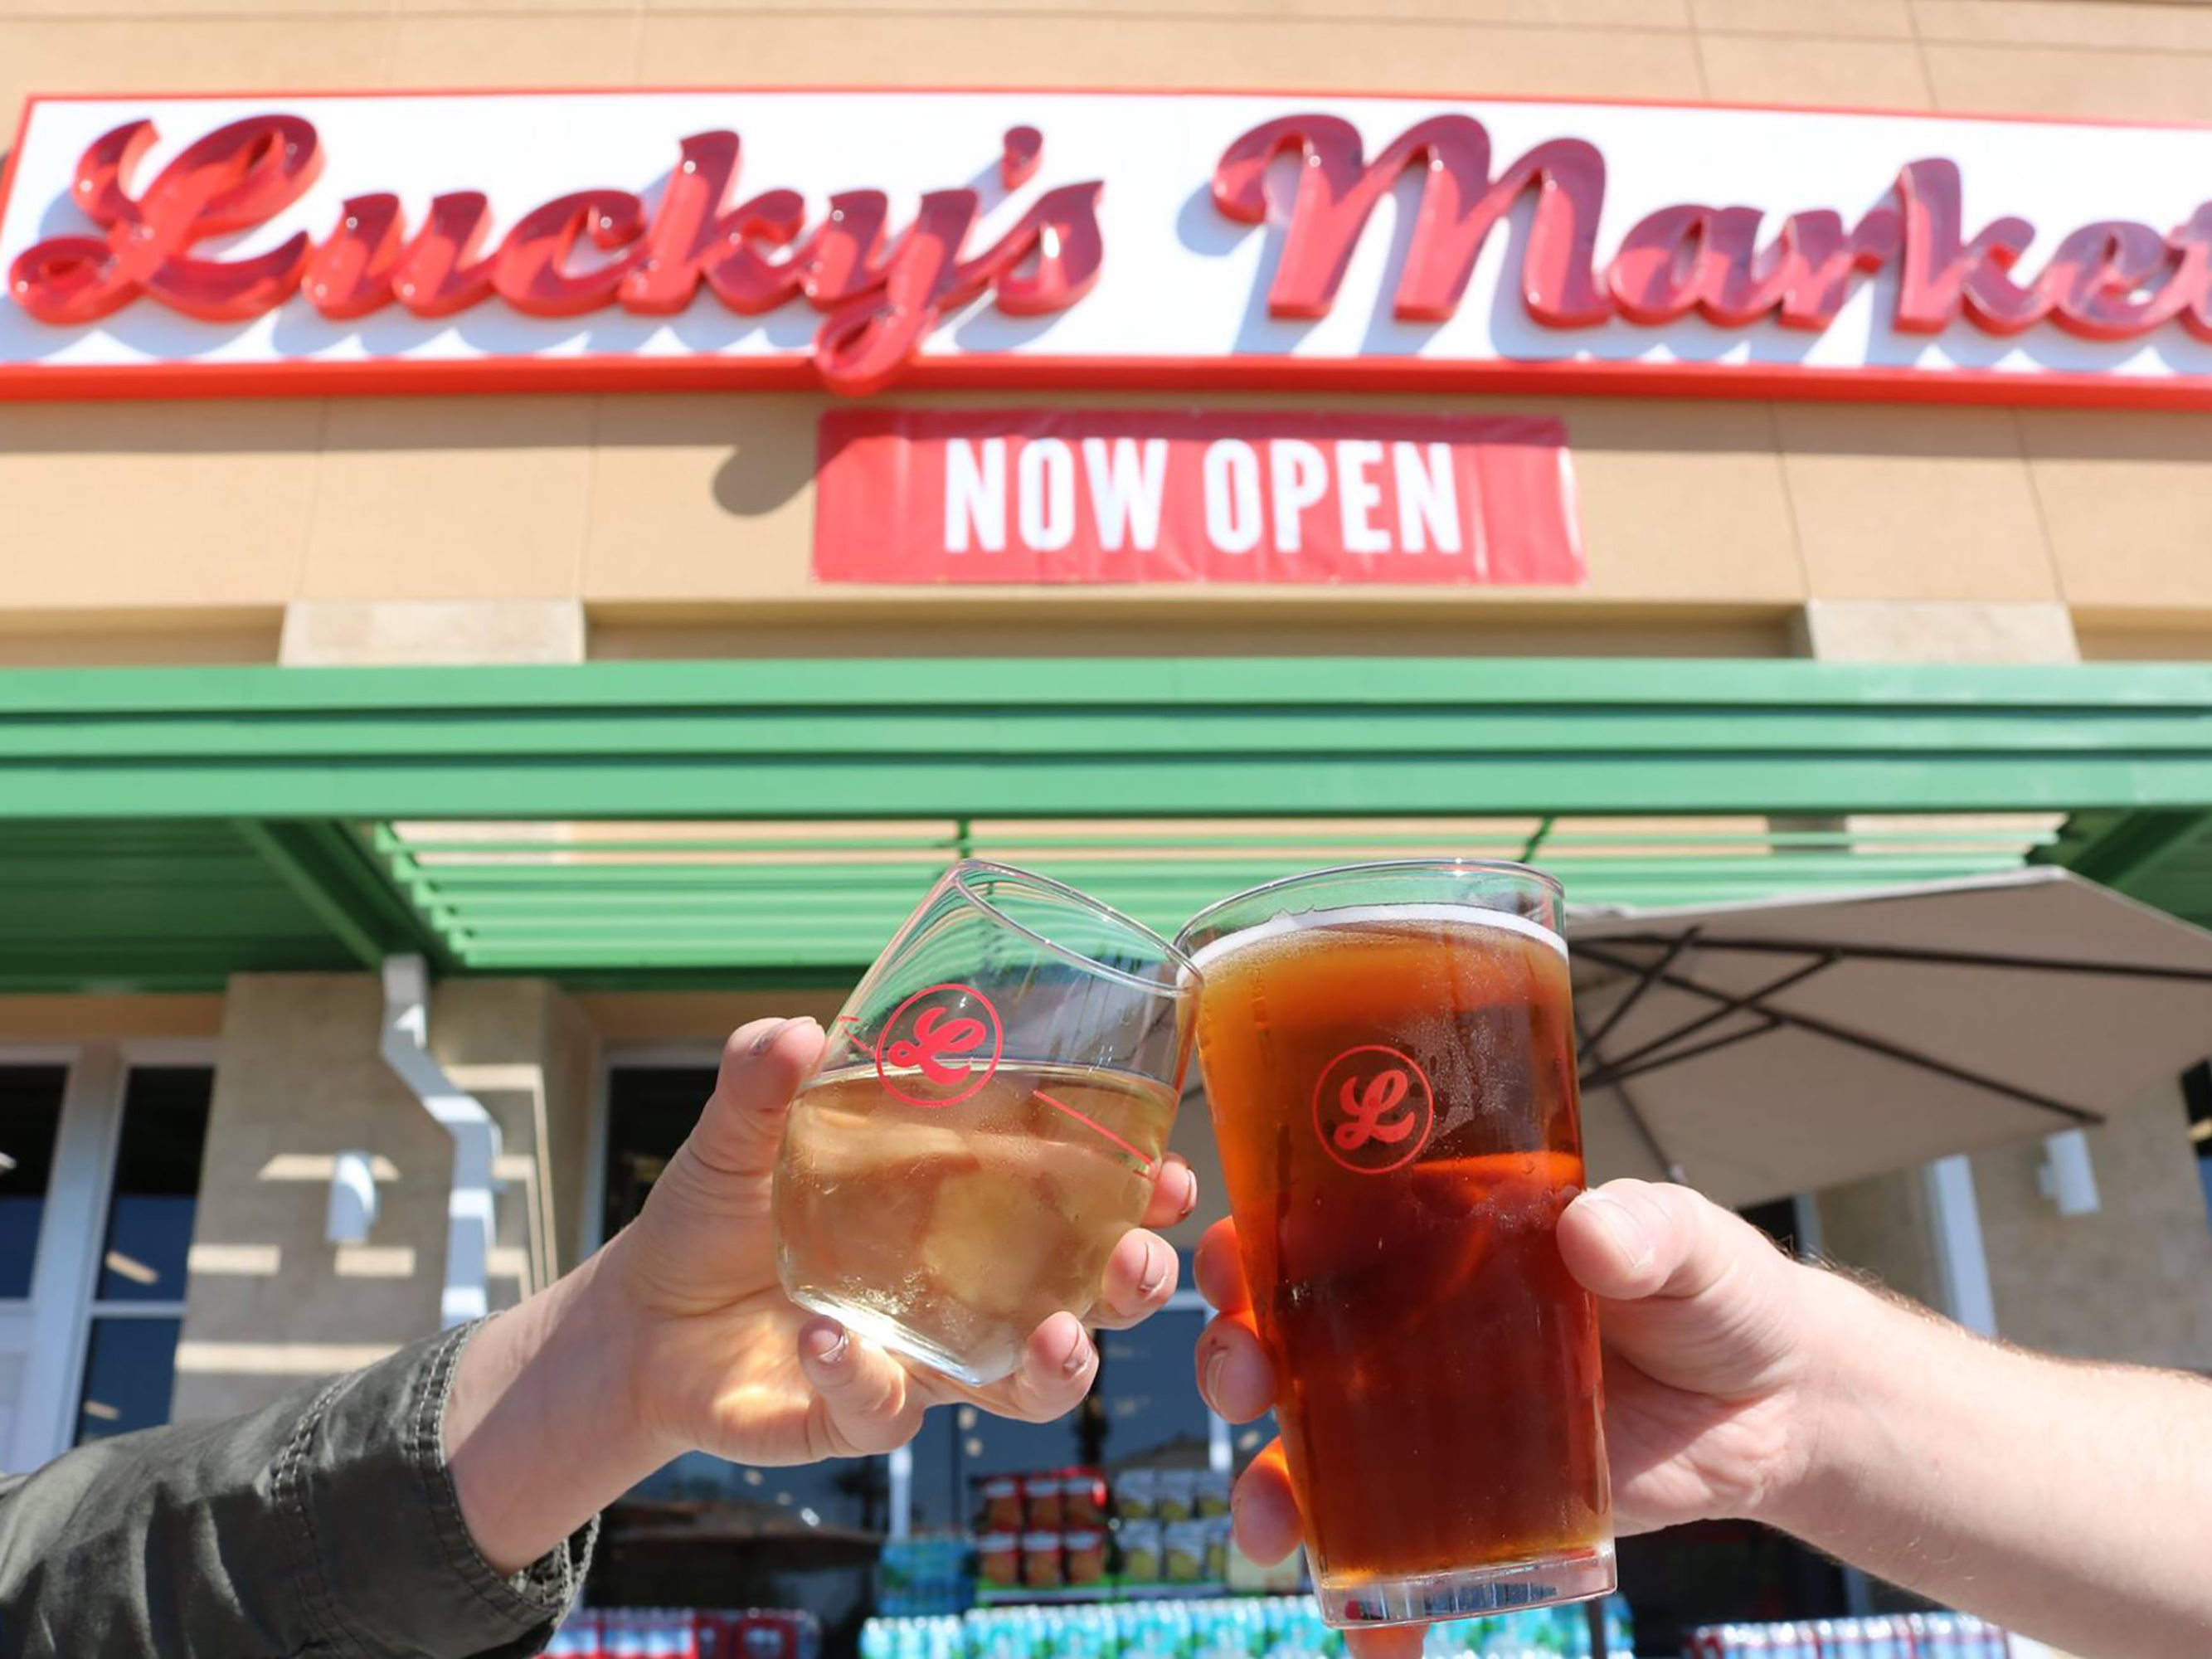 Luckys Supermarket Is a Healthy Grocery Store About to Go Viral